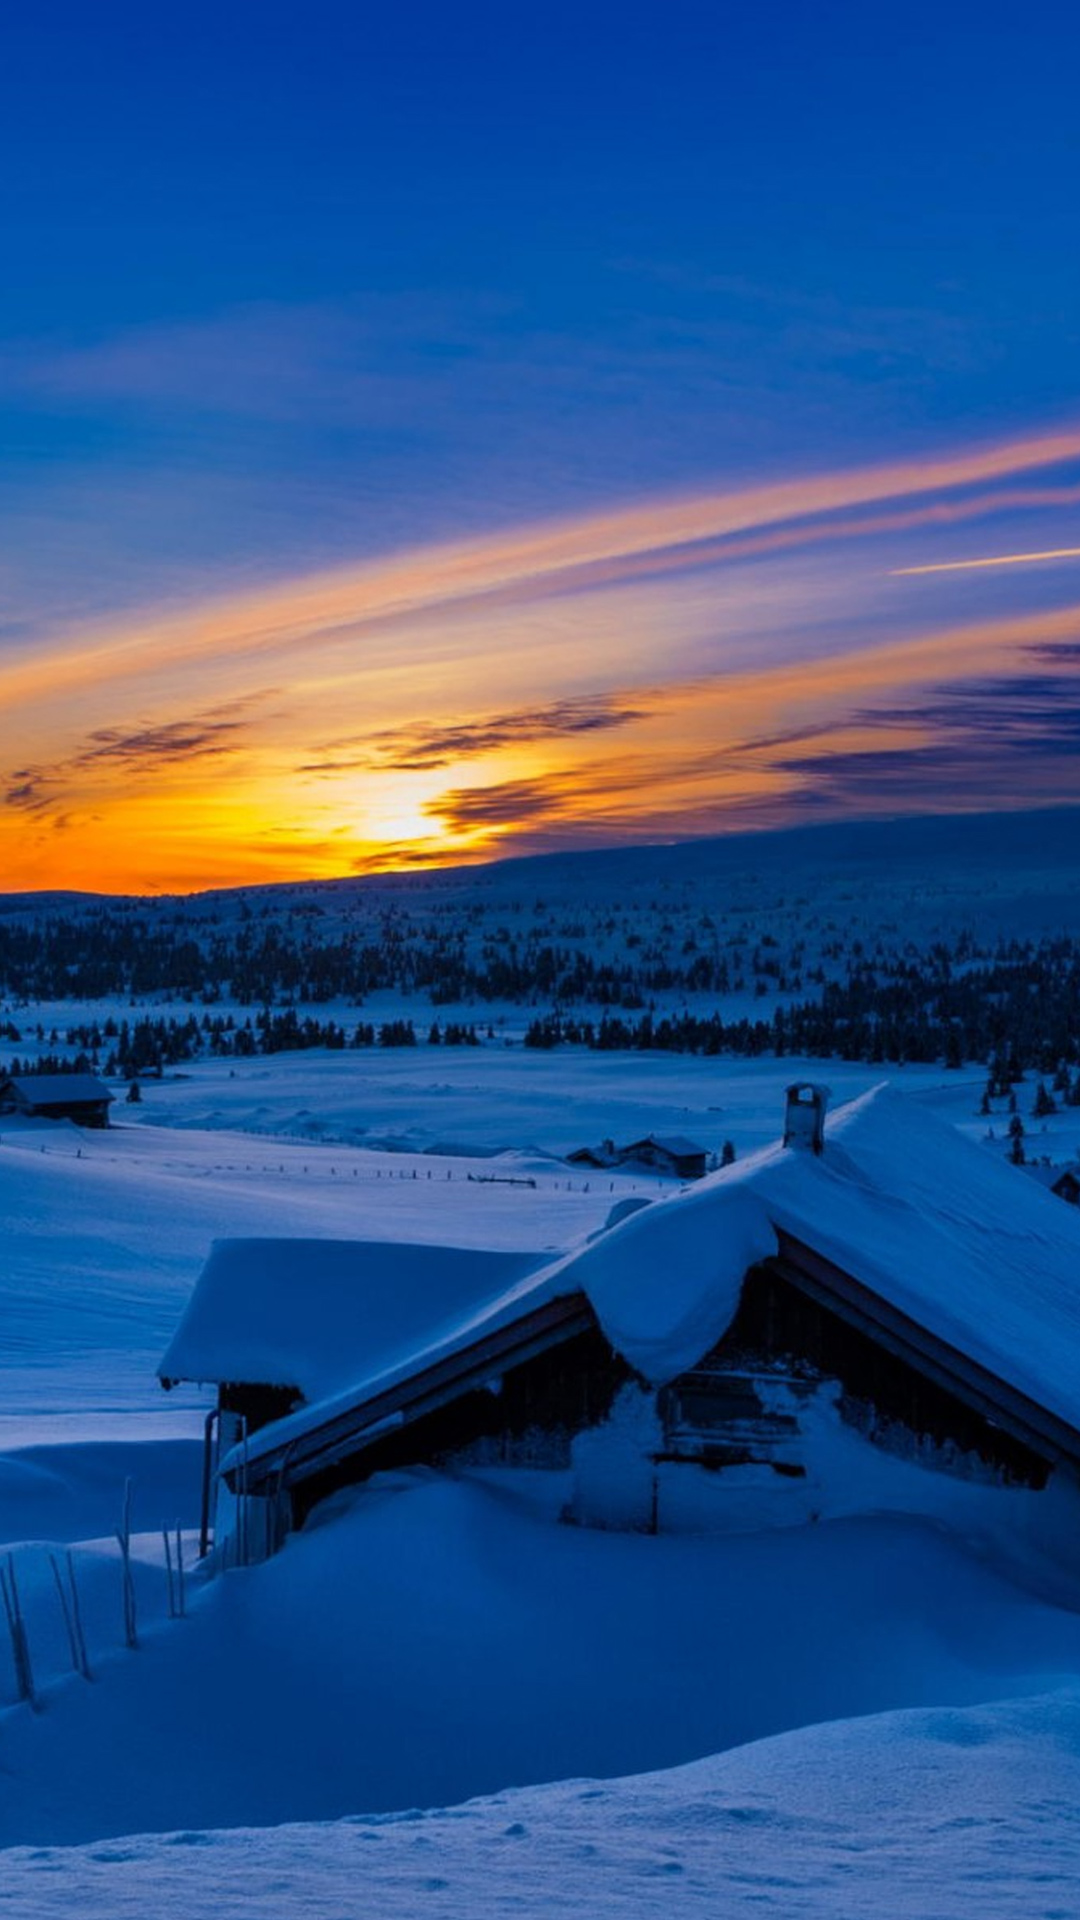 Beautiful Sunset Winter Chalet Snow iPhone 6 Plus HD Wallpaper